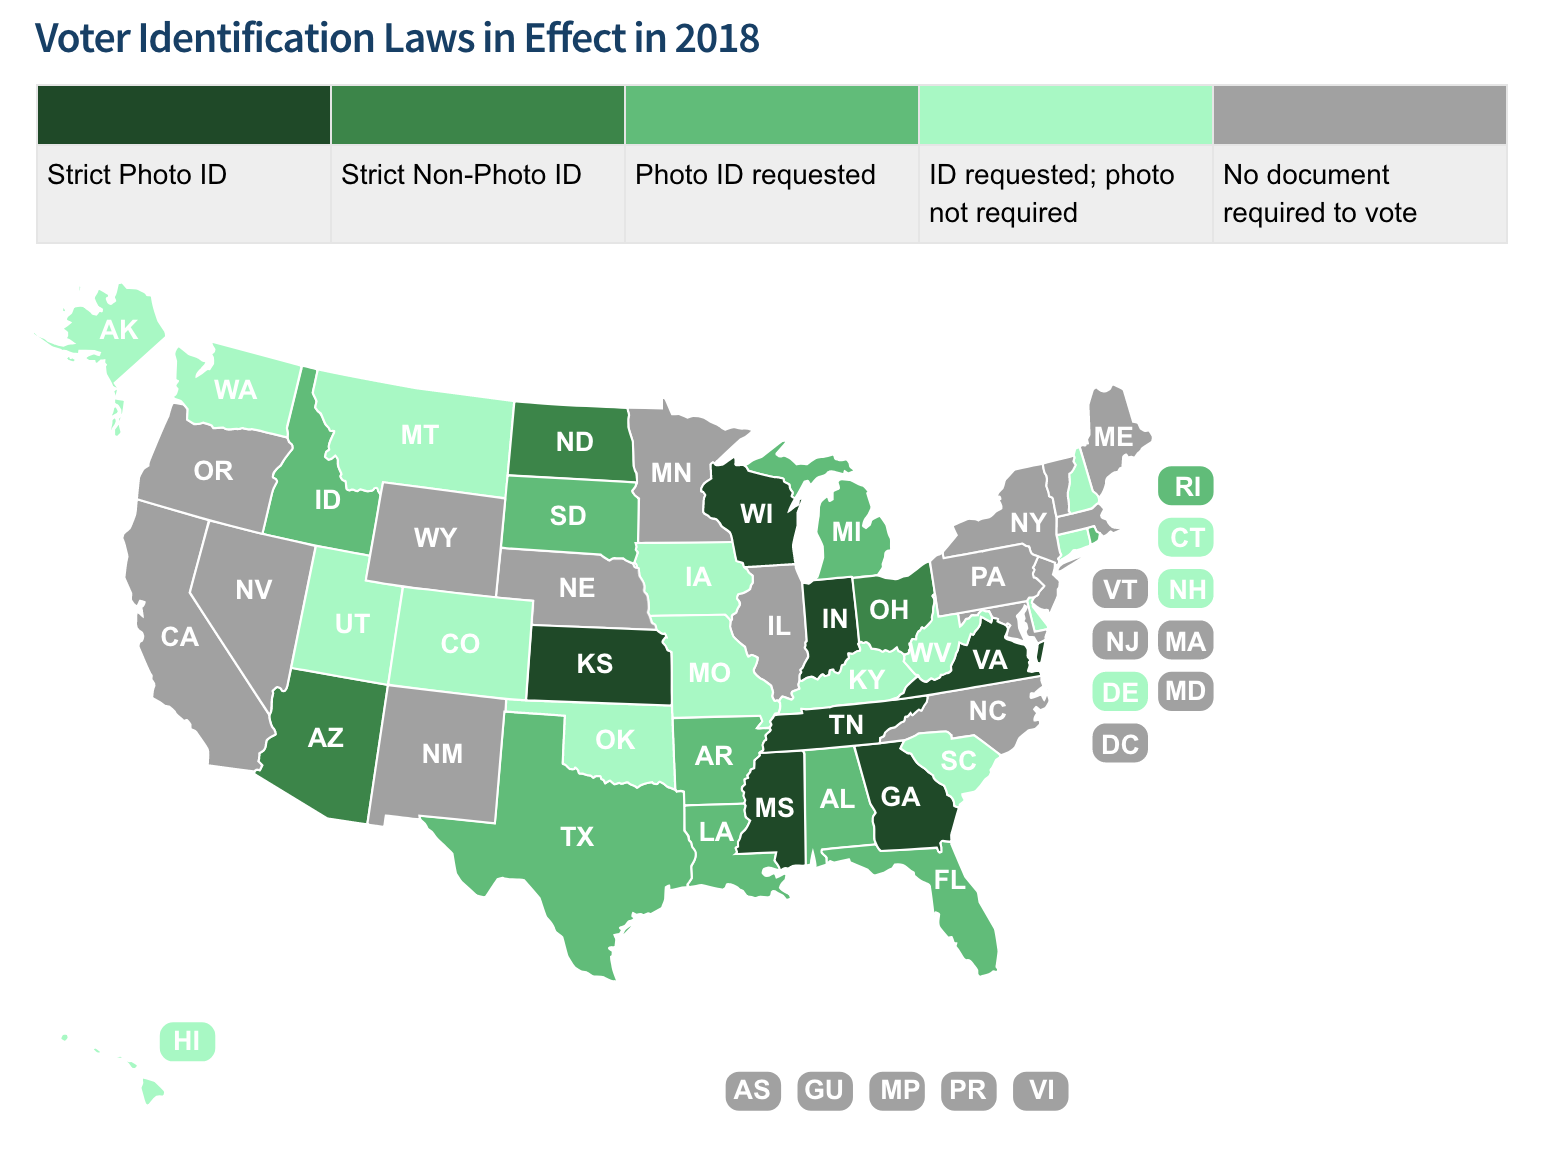 Voter identification laws map